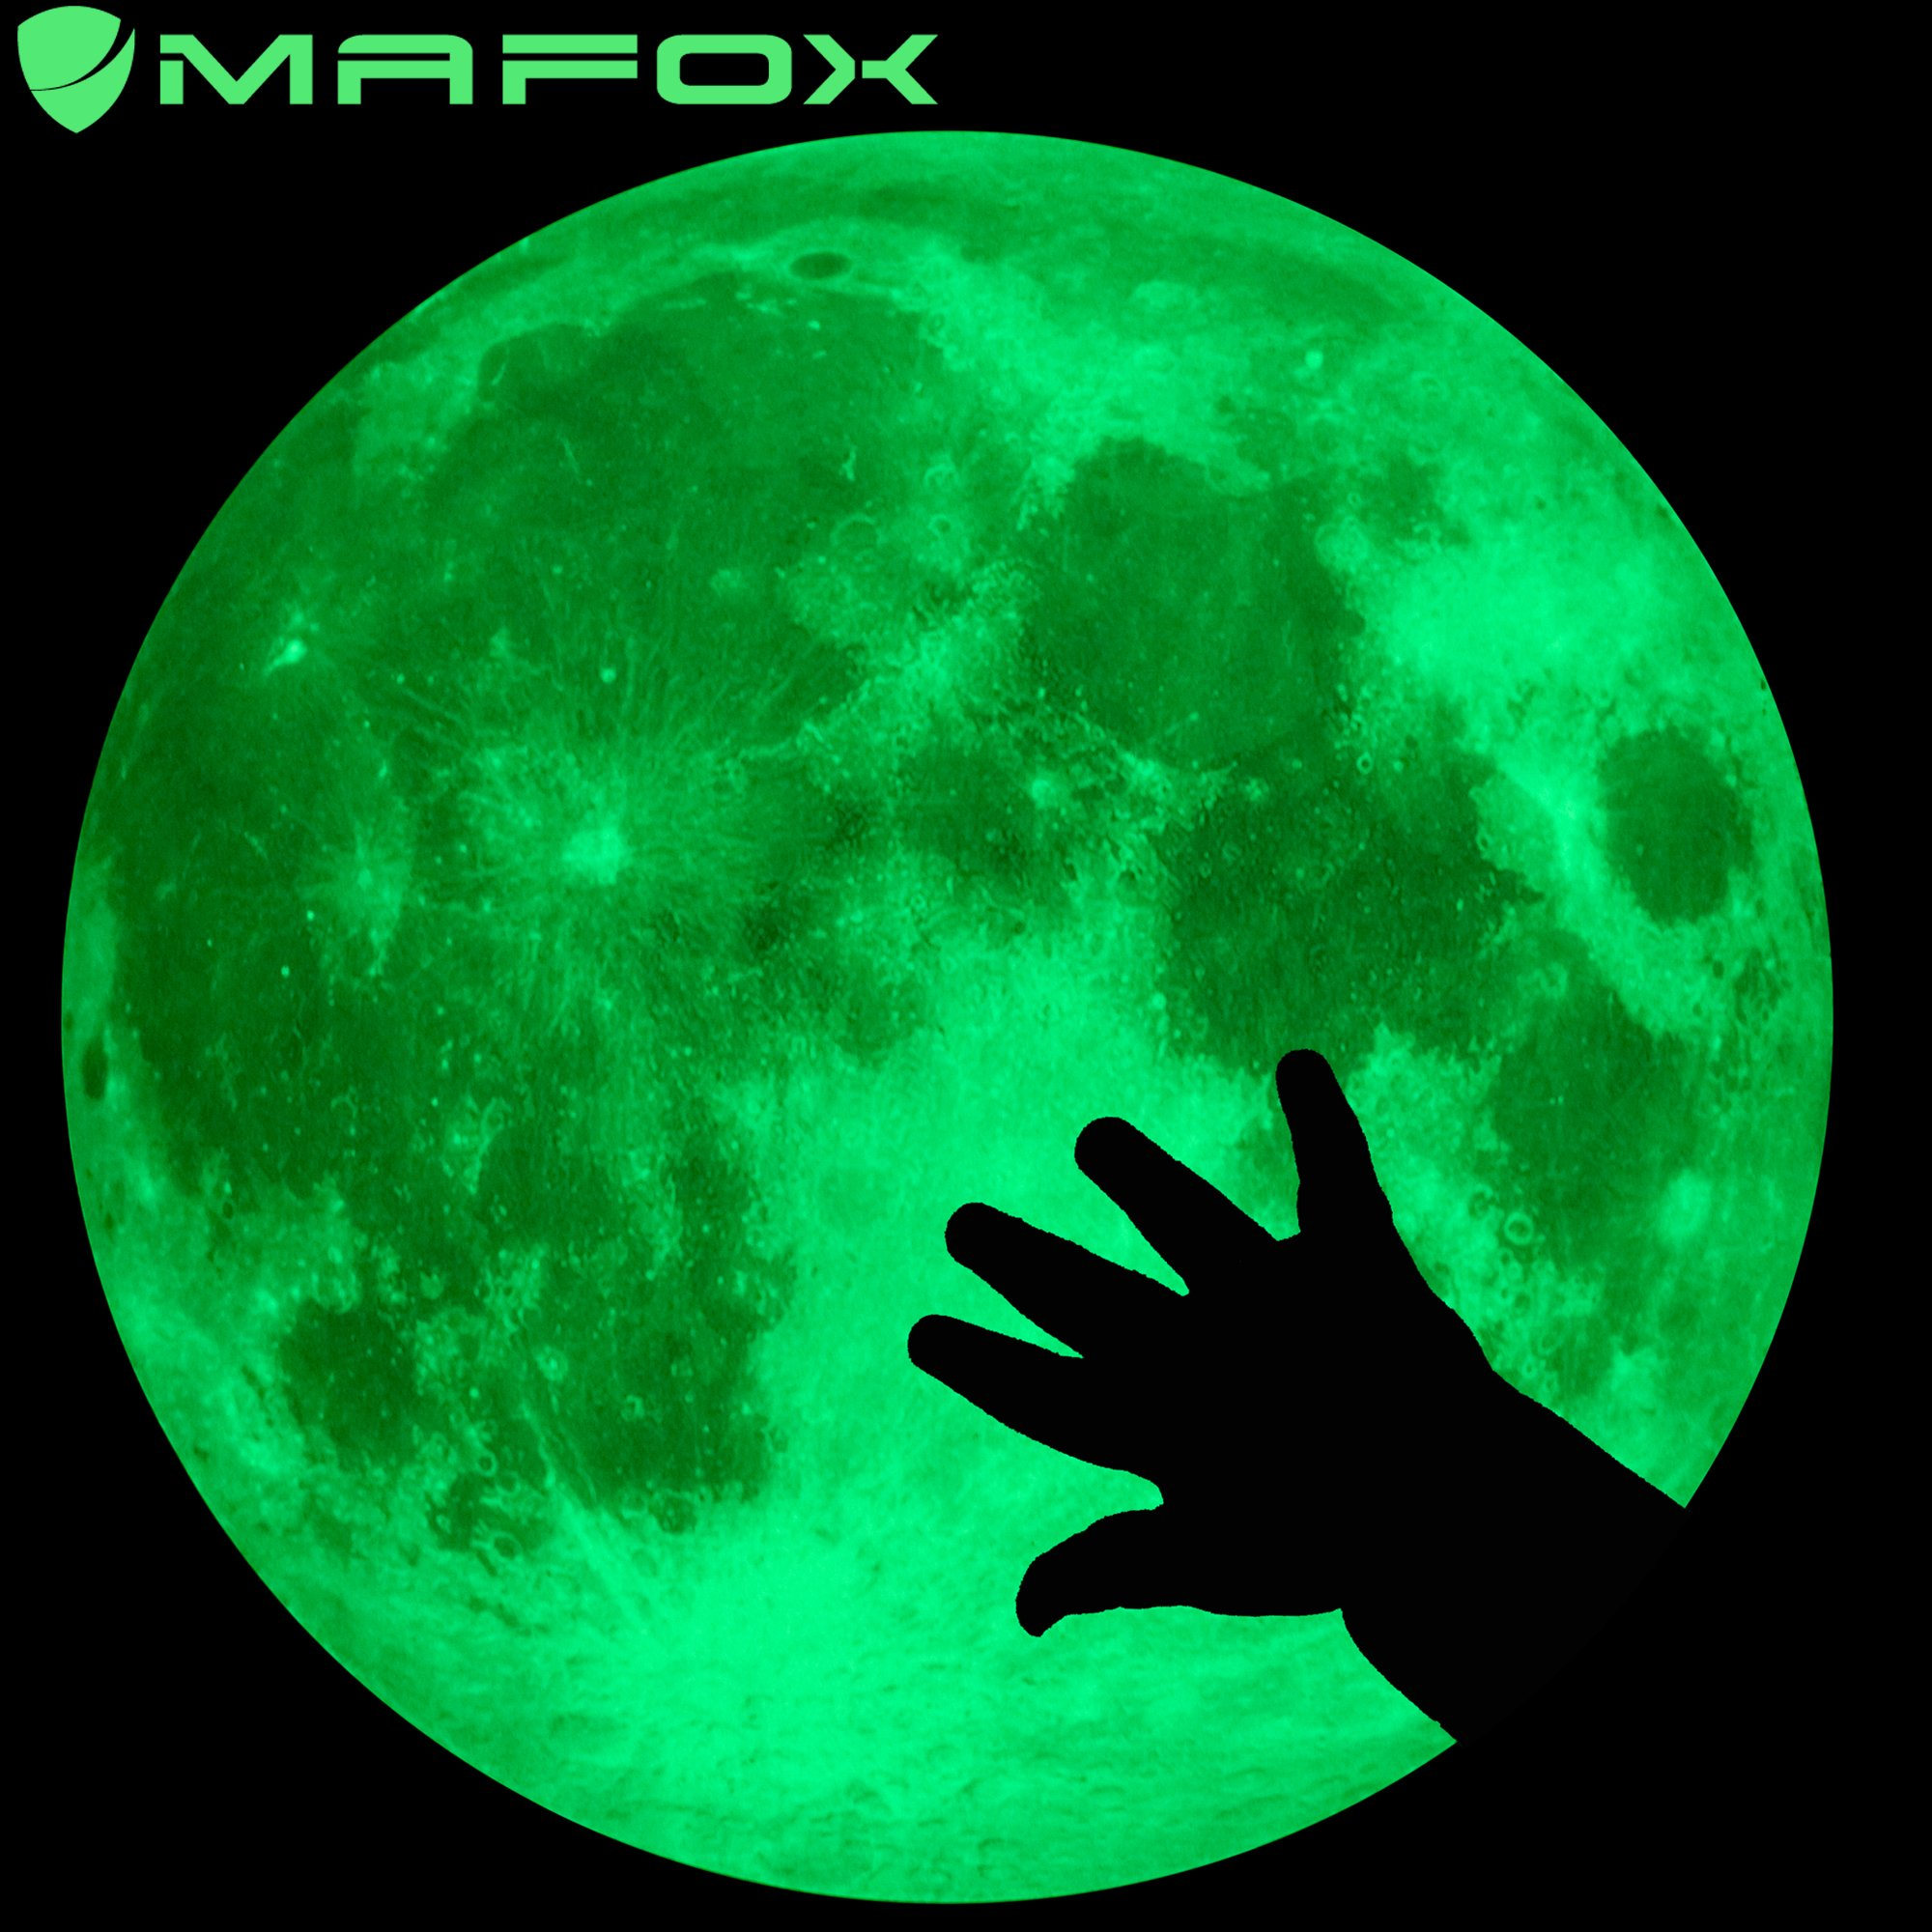 Moon Glow in the Dark Wall or Ceiling Stickers – Mafox Planet Decal Solar System Decor for Kids Room by MAFOX